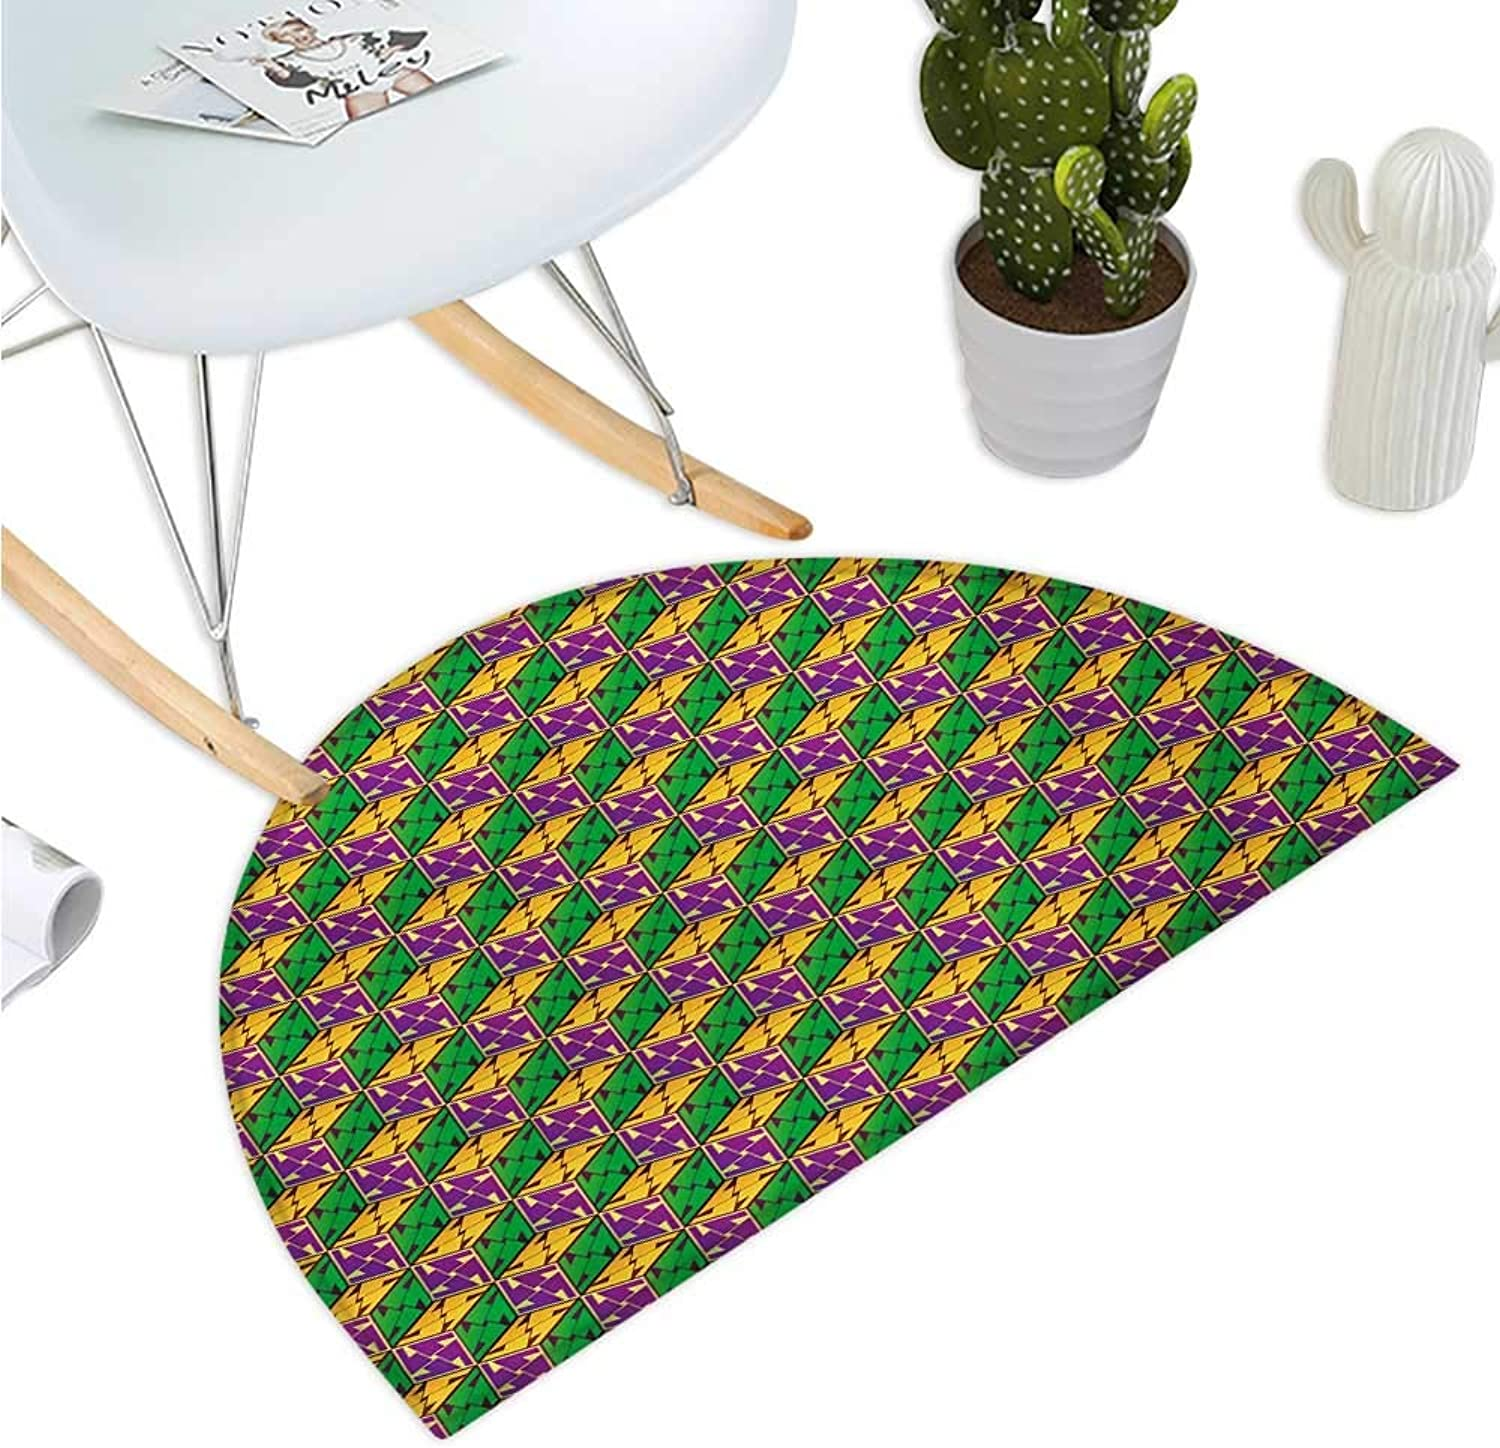 Abstract Semicircular Cushion Geometric Cube Square Boxes Hexagonal Abstract Effects Print Entry Door Mat H 39.3  xD 59  Fuchsia Earth Yellow Lime Green